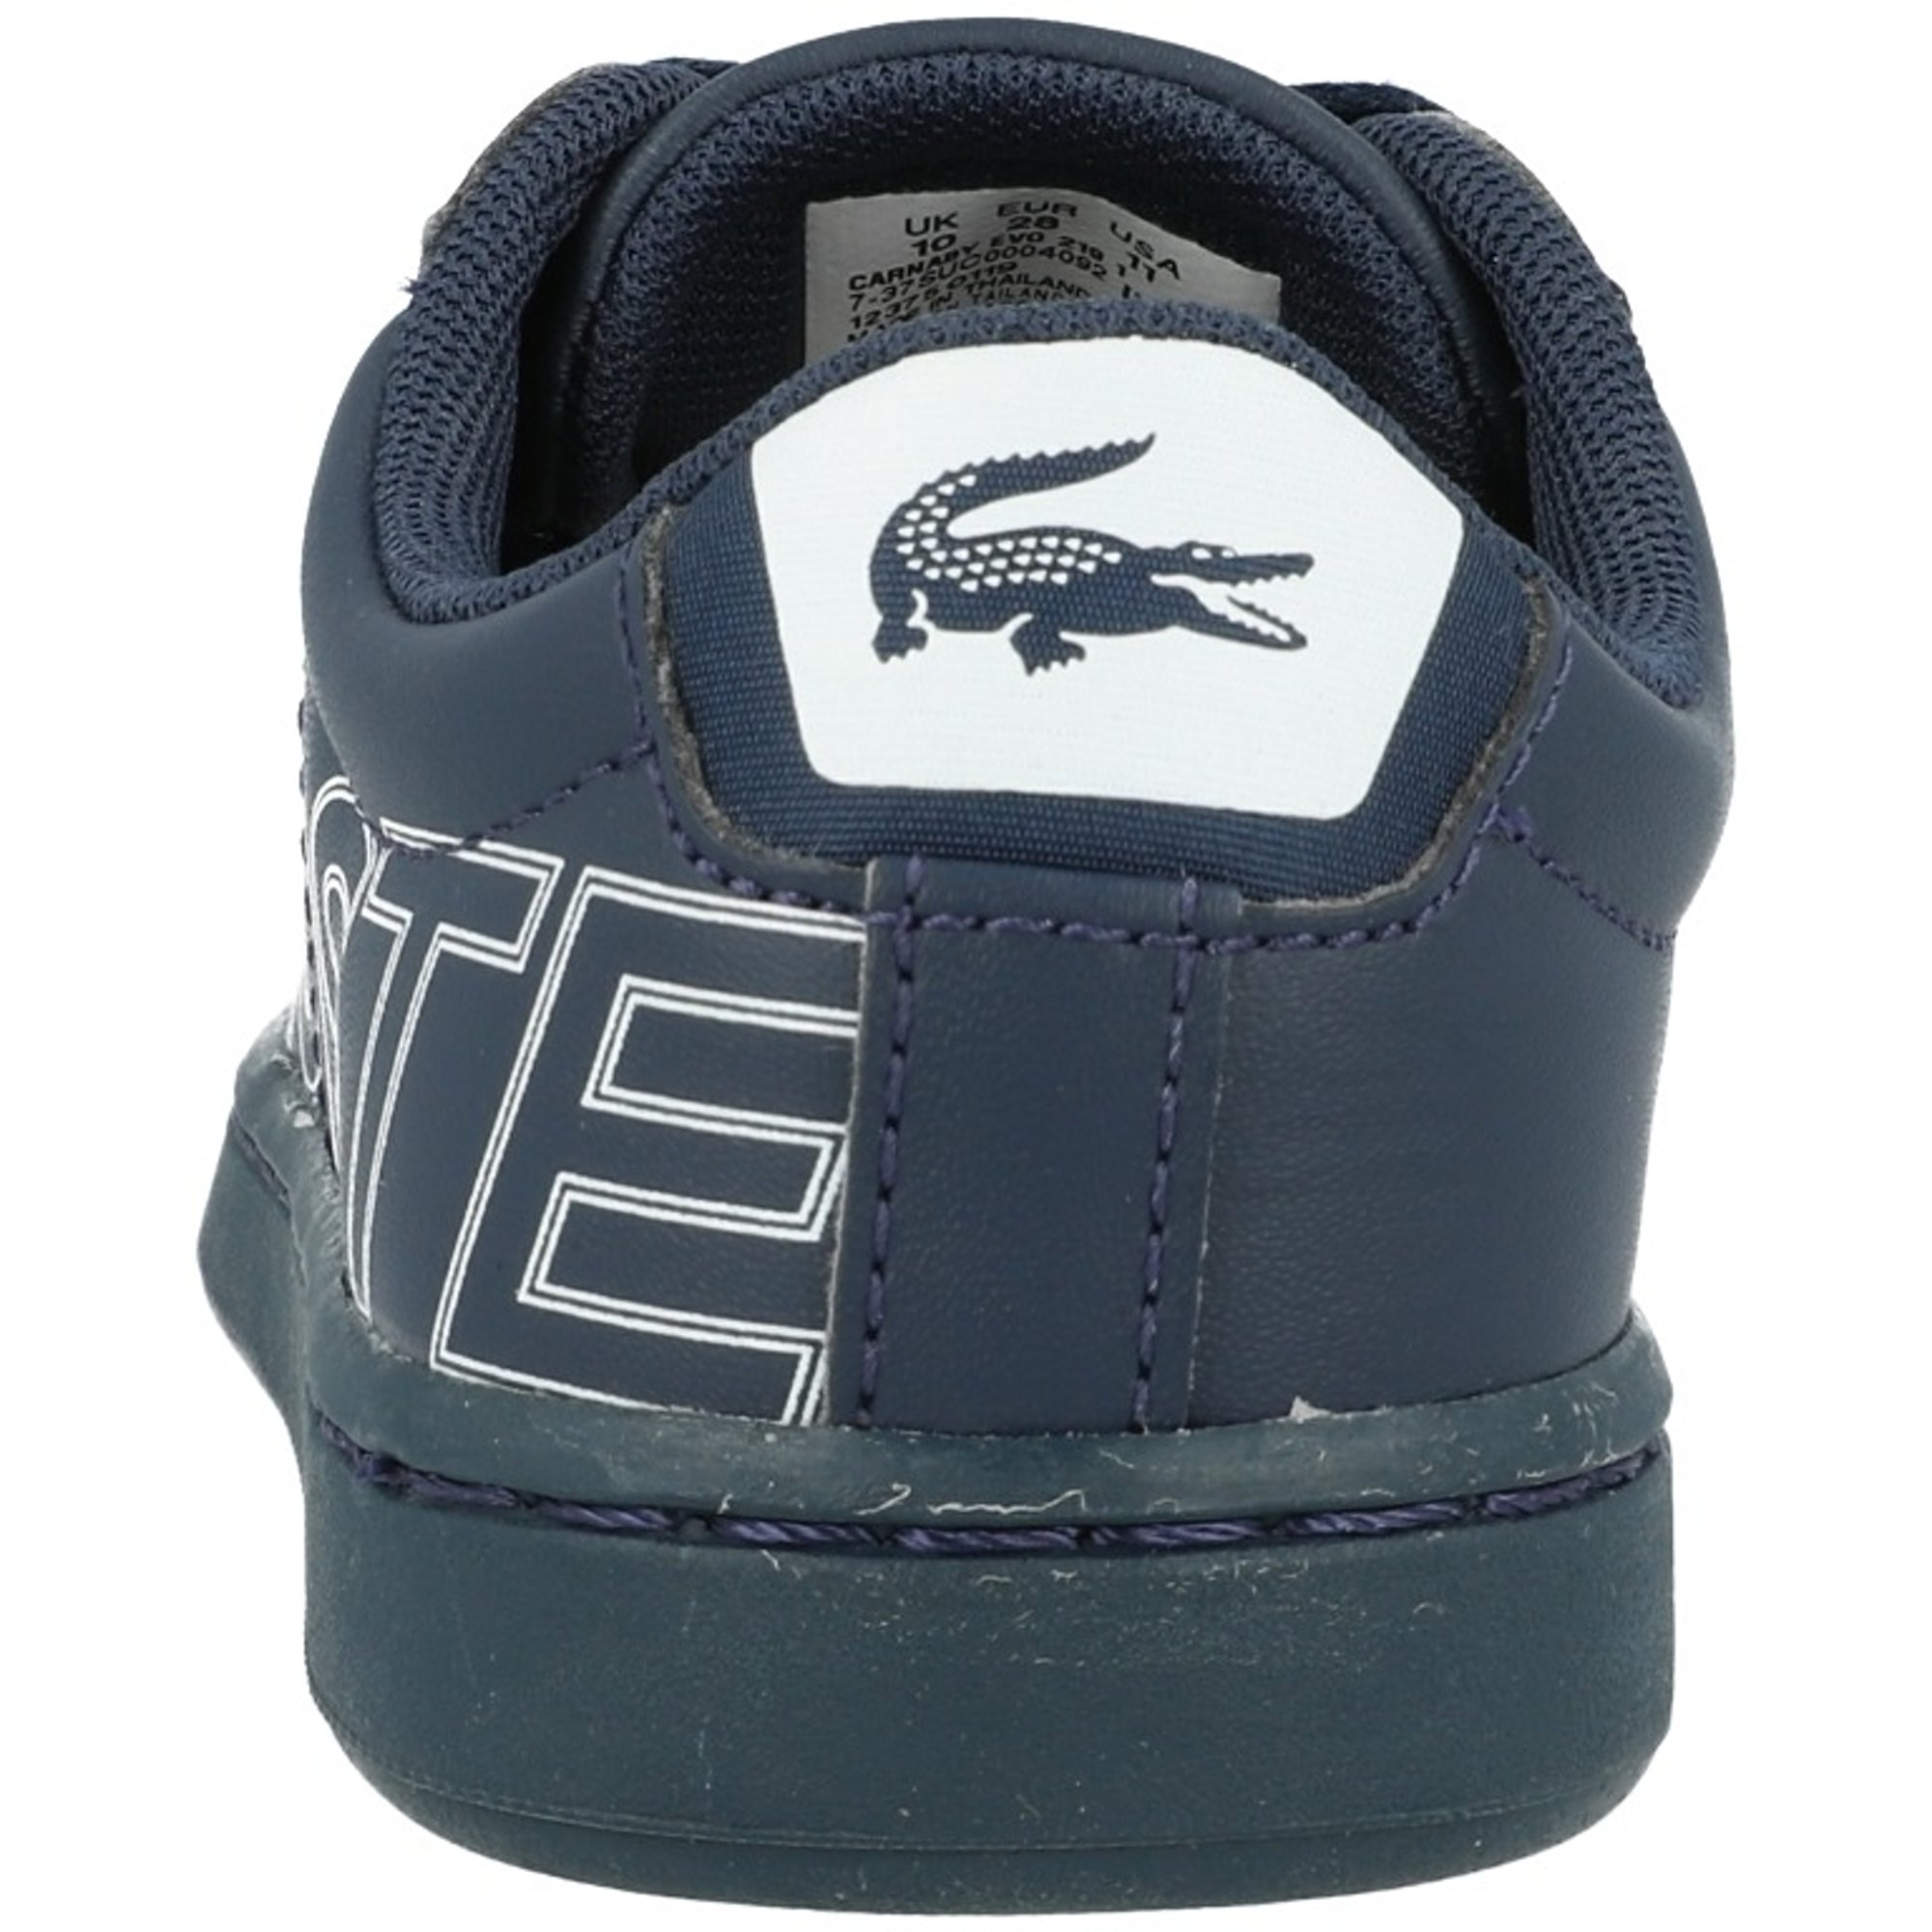 Lacoste Carnaby Evo 219 1 Navy/White Synthetic